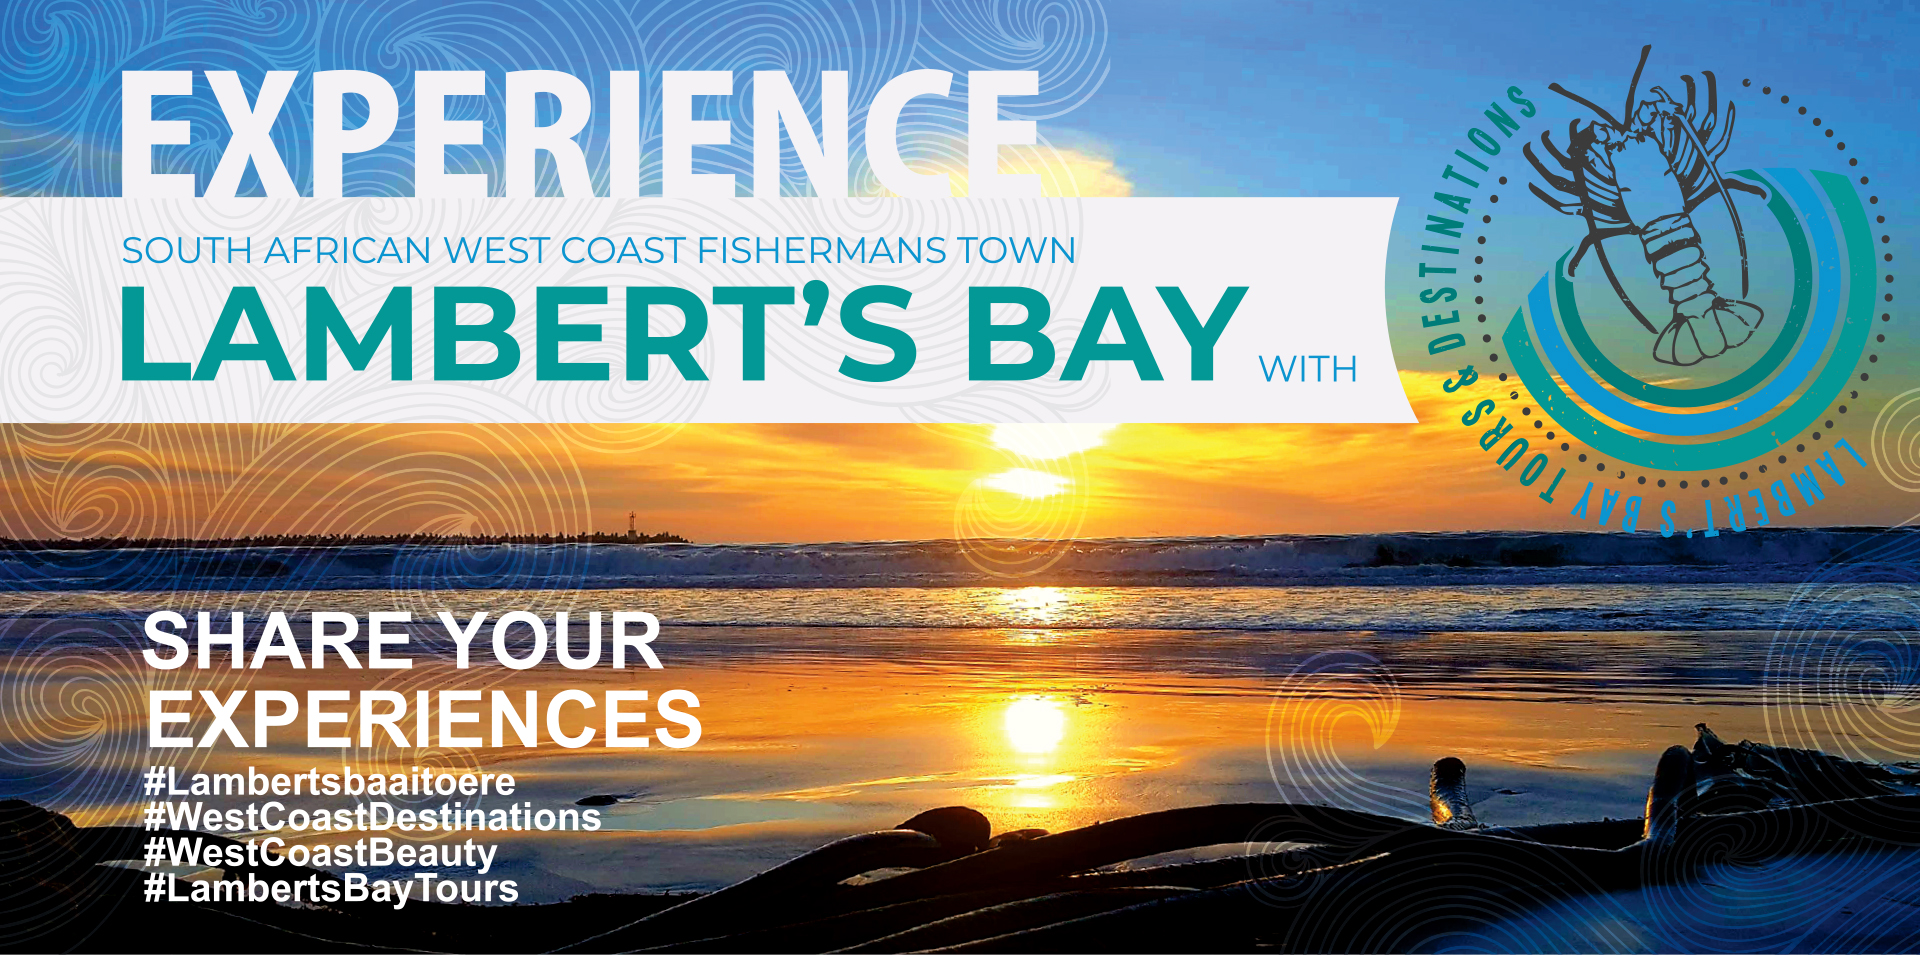 Lambert's Bay Tours & Destinations Lambertsbaai South Africa